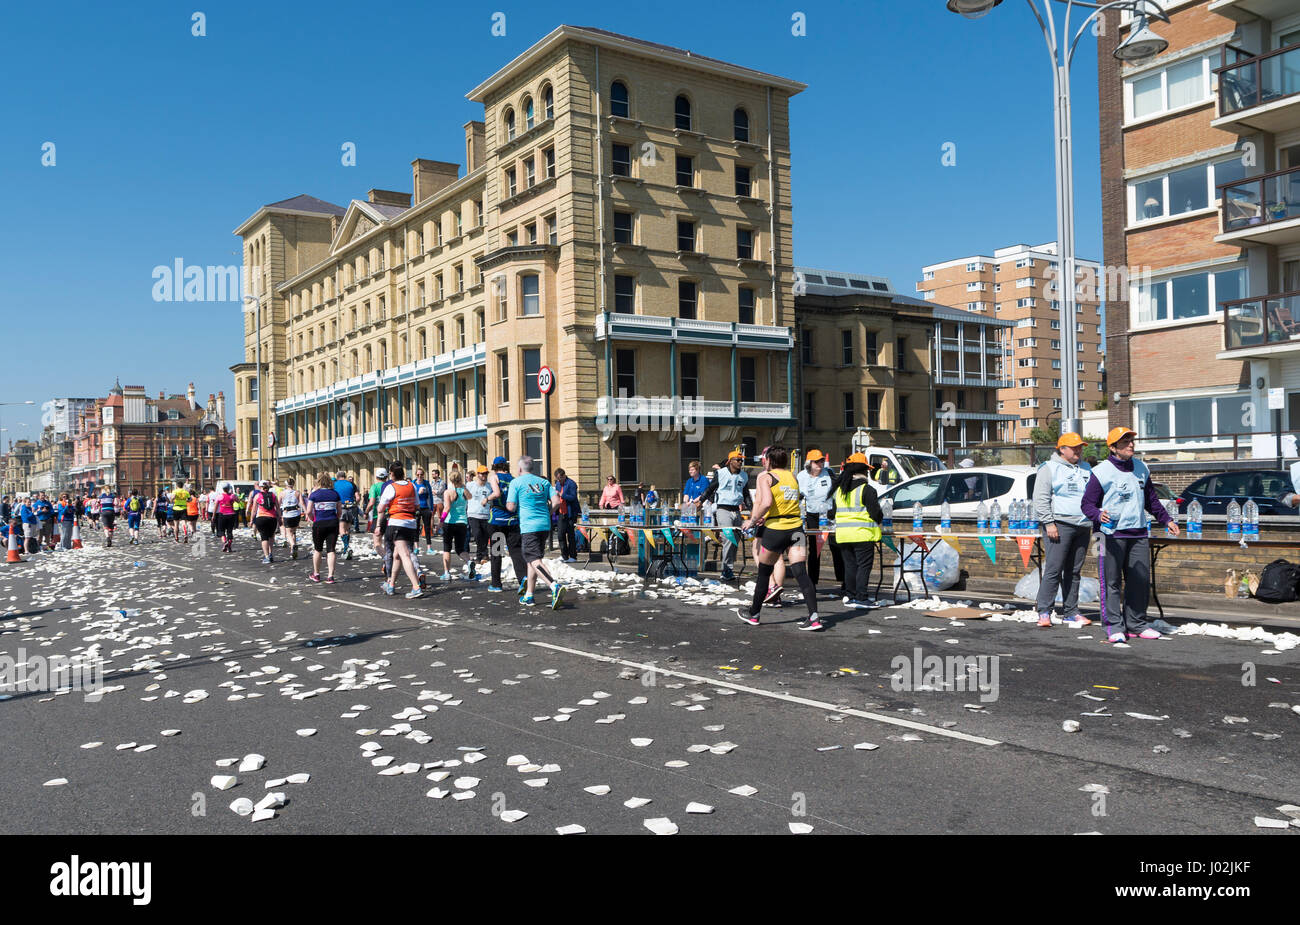 Brighton, UK. 9th Apr, 2017. Water stations ran out of cups, forcing runners to drink out of open bottles of water. - Stock Image